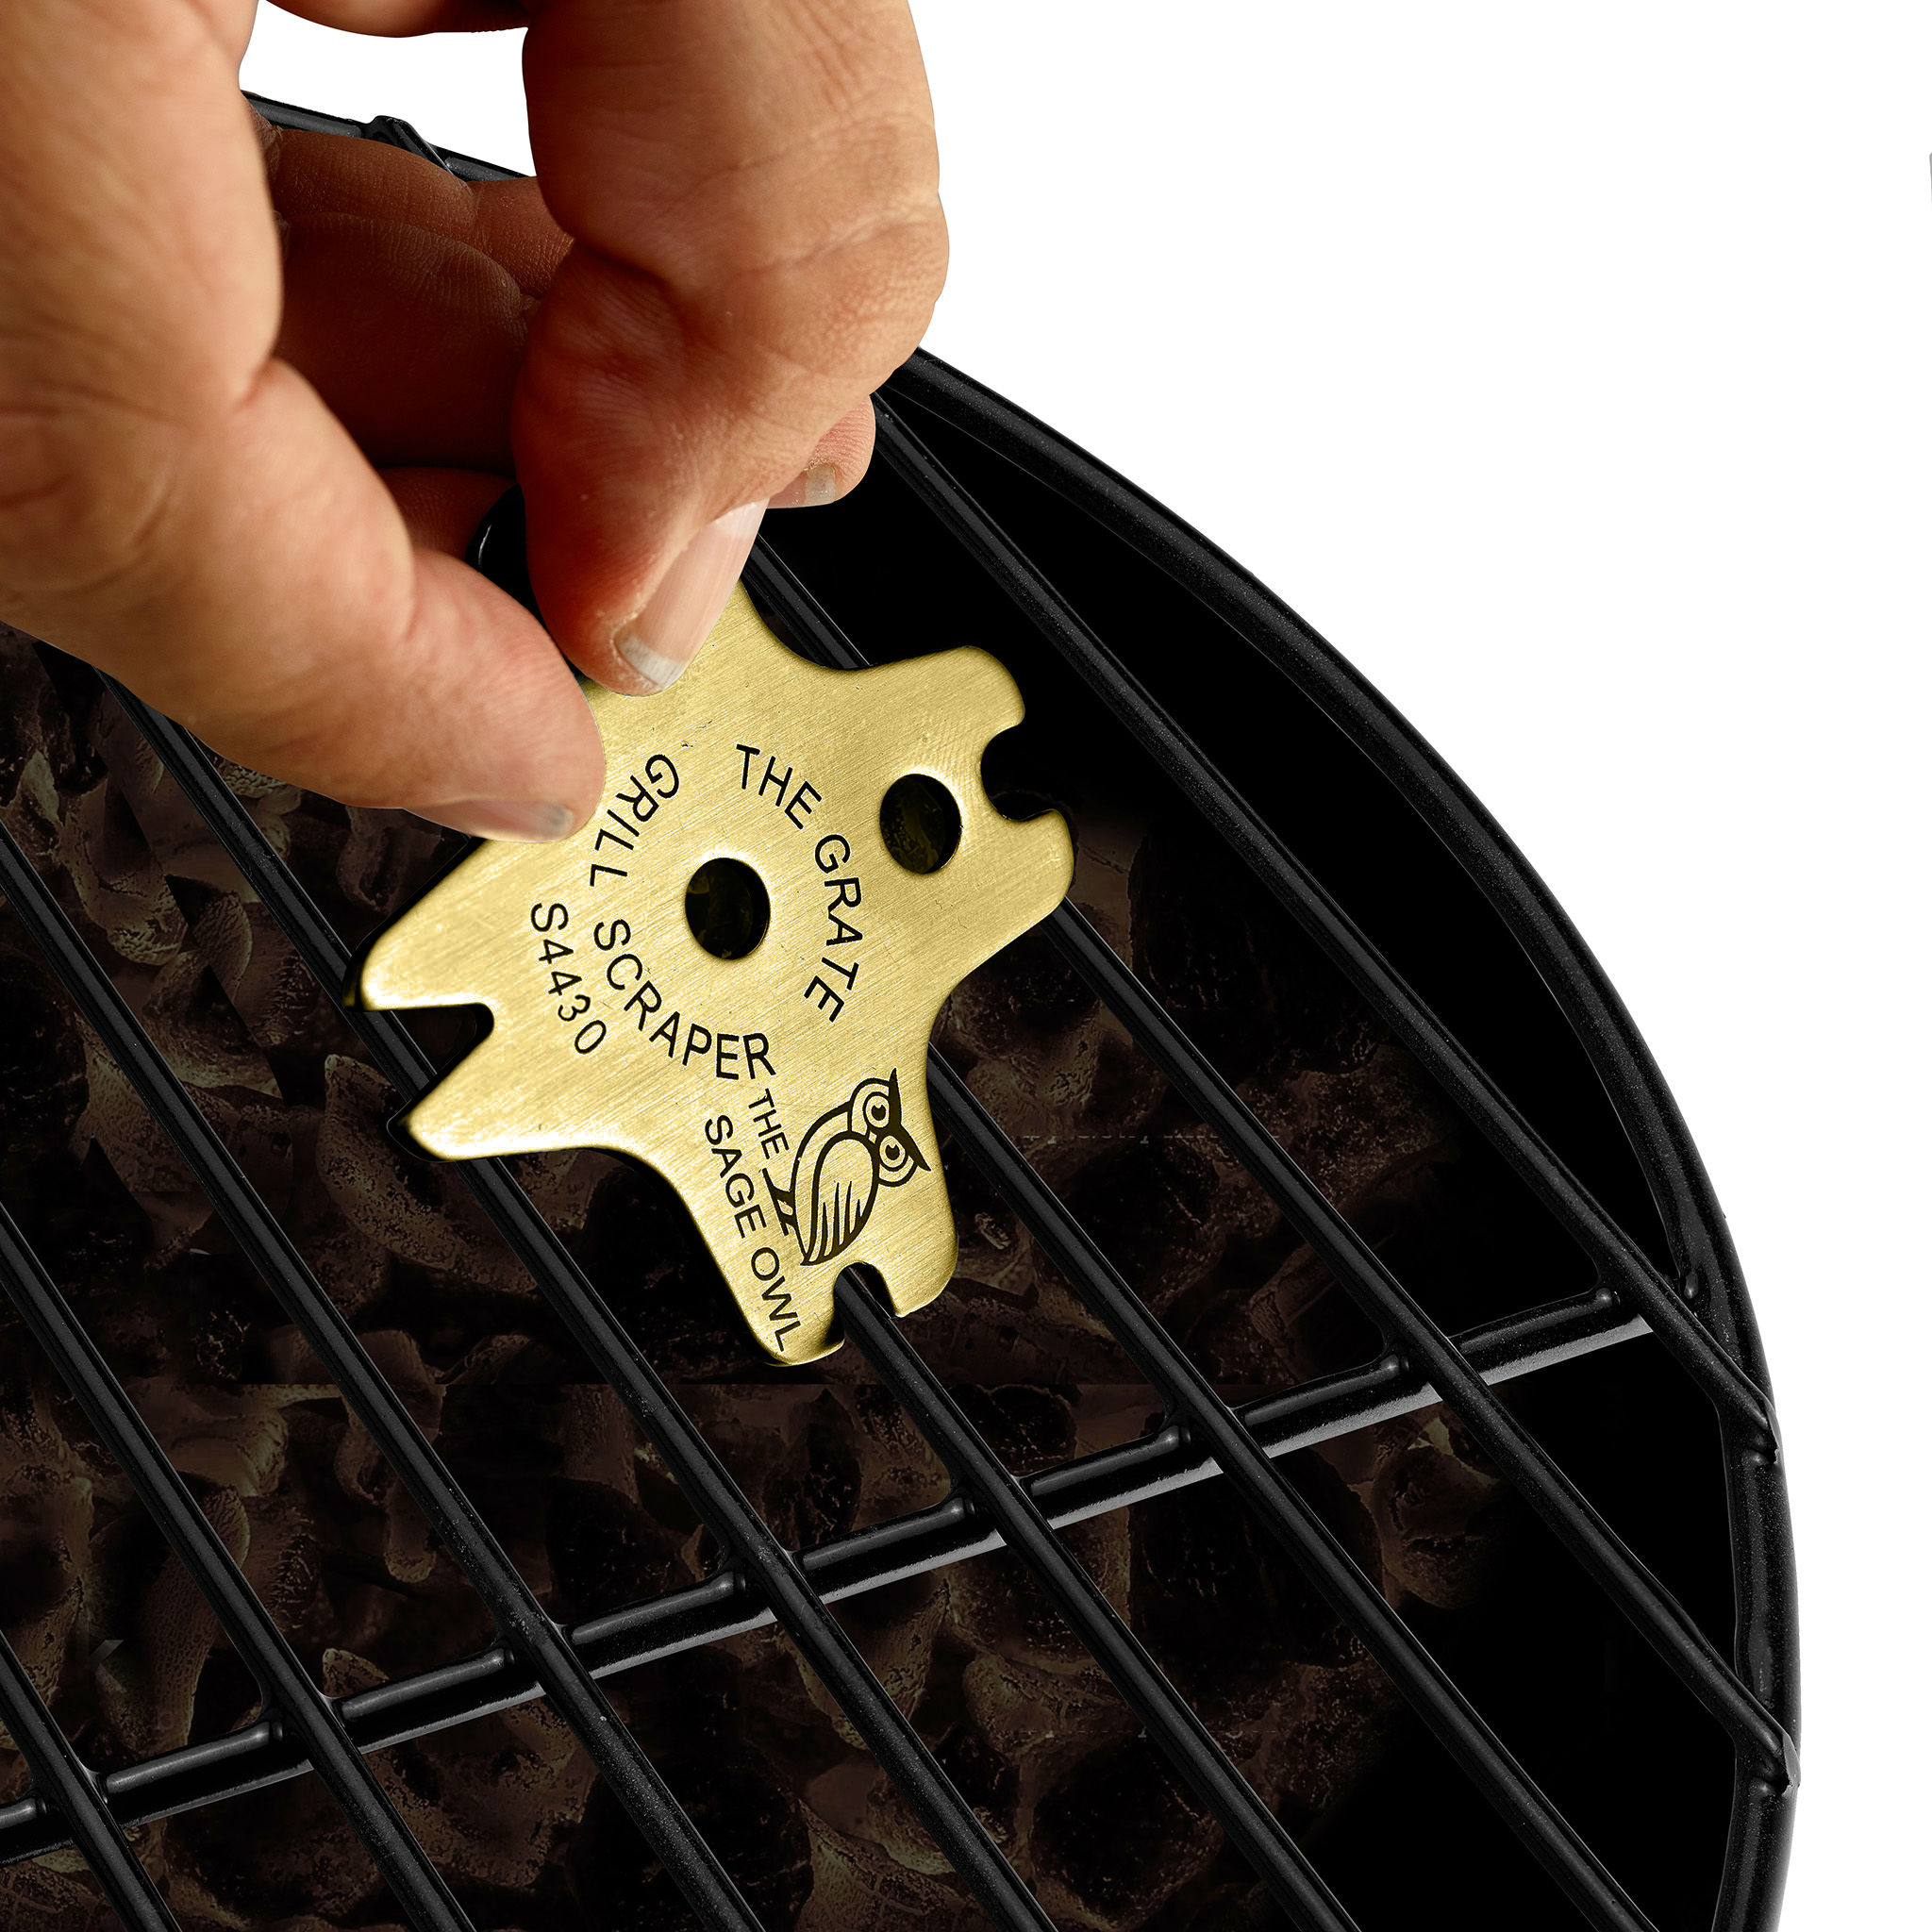 S4430 - The Grate Grill Scraper - Brass Barbque Grill Cleaner